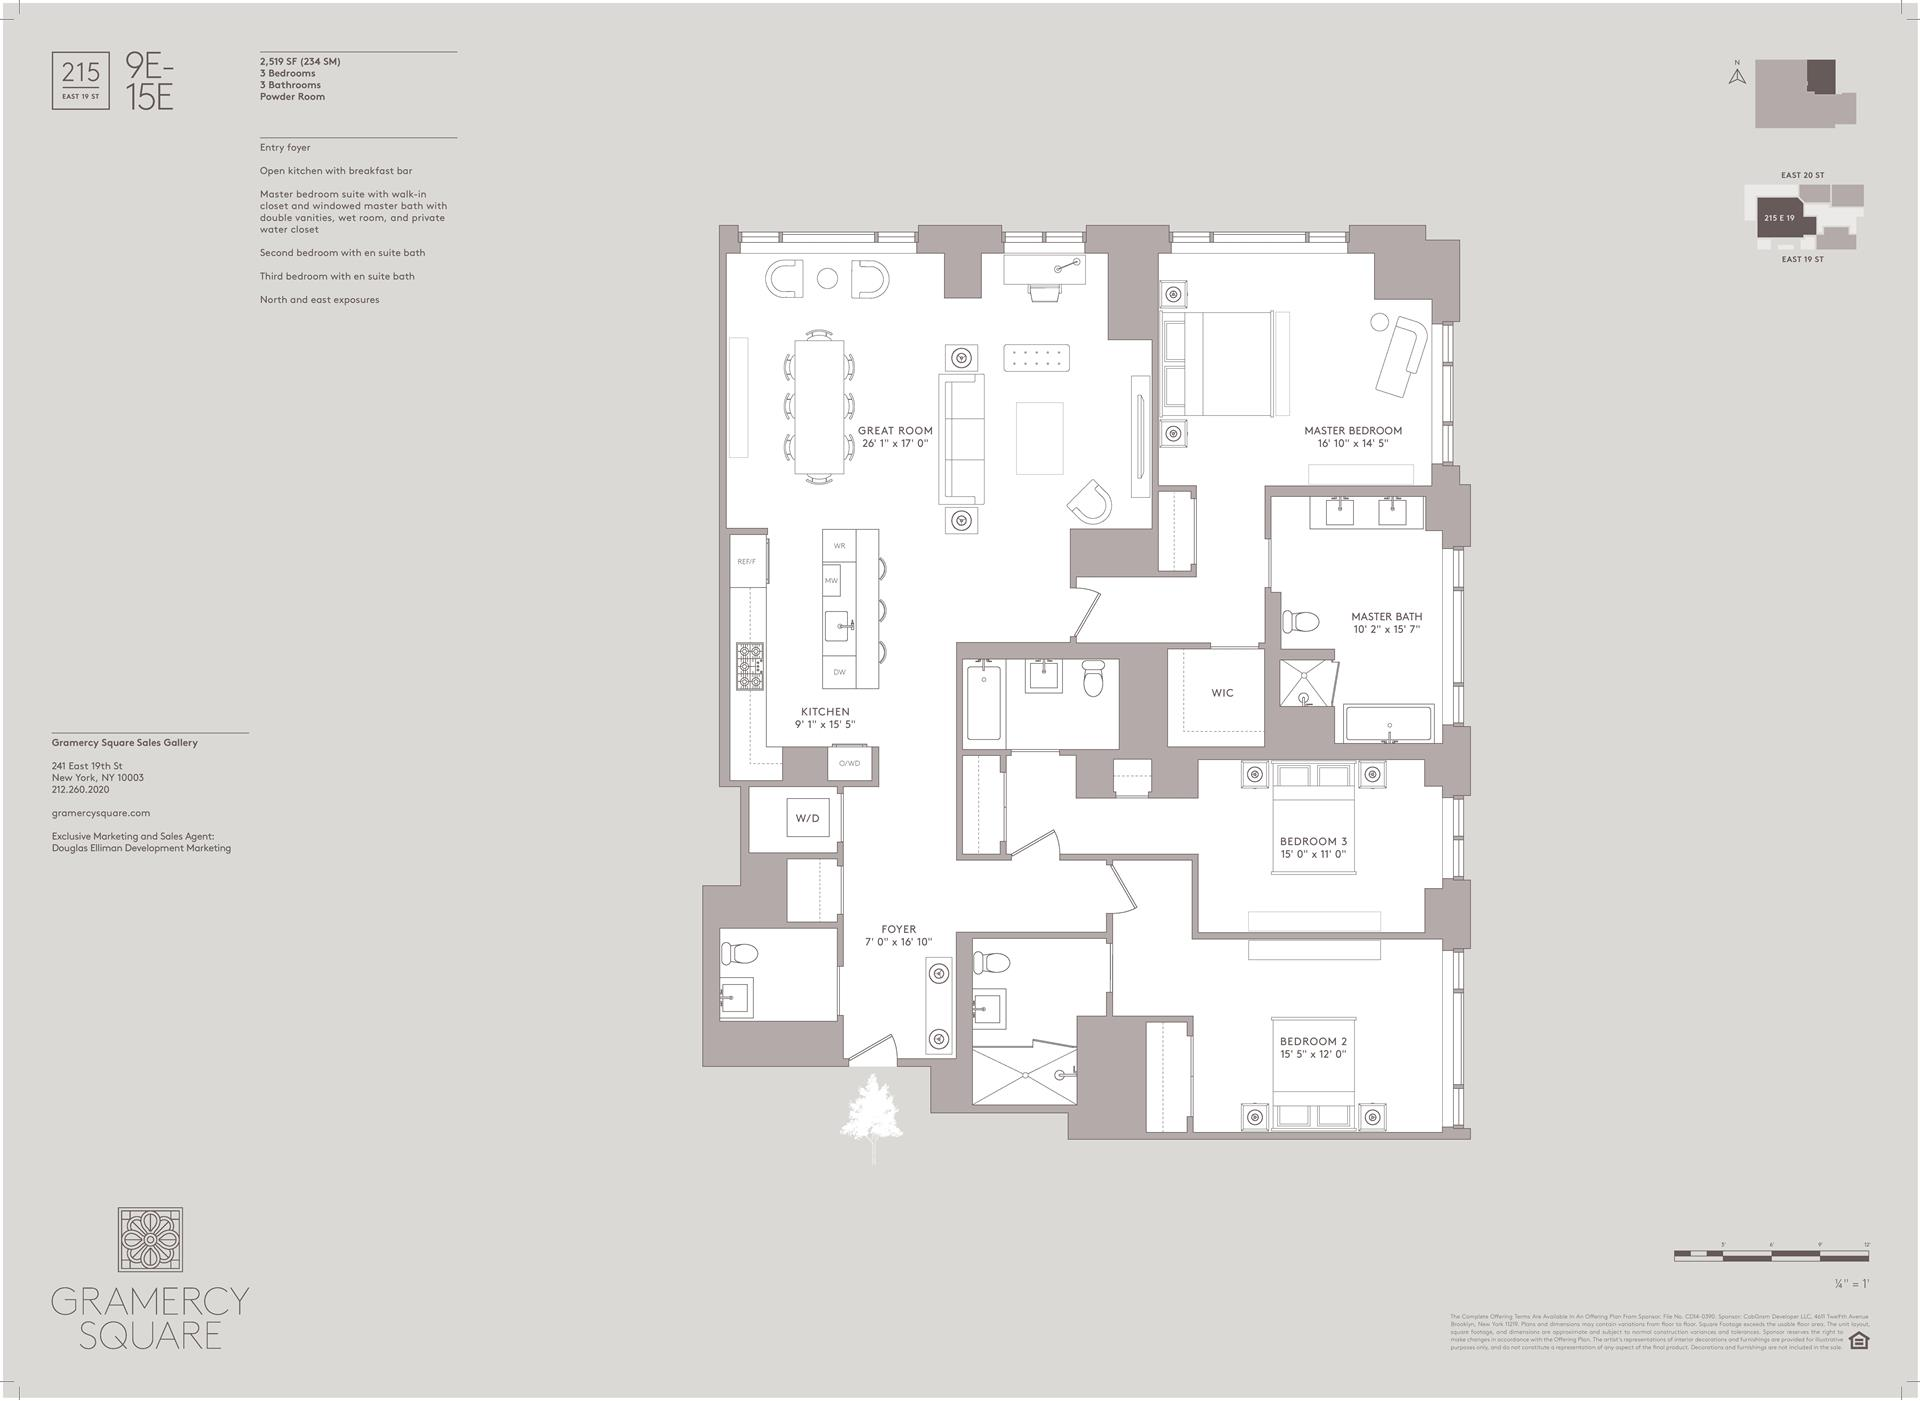 Floor plan of Gramercy Square, 215 East 19th St, 10E - Gramercy - Union Square, New York